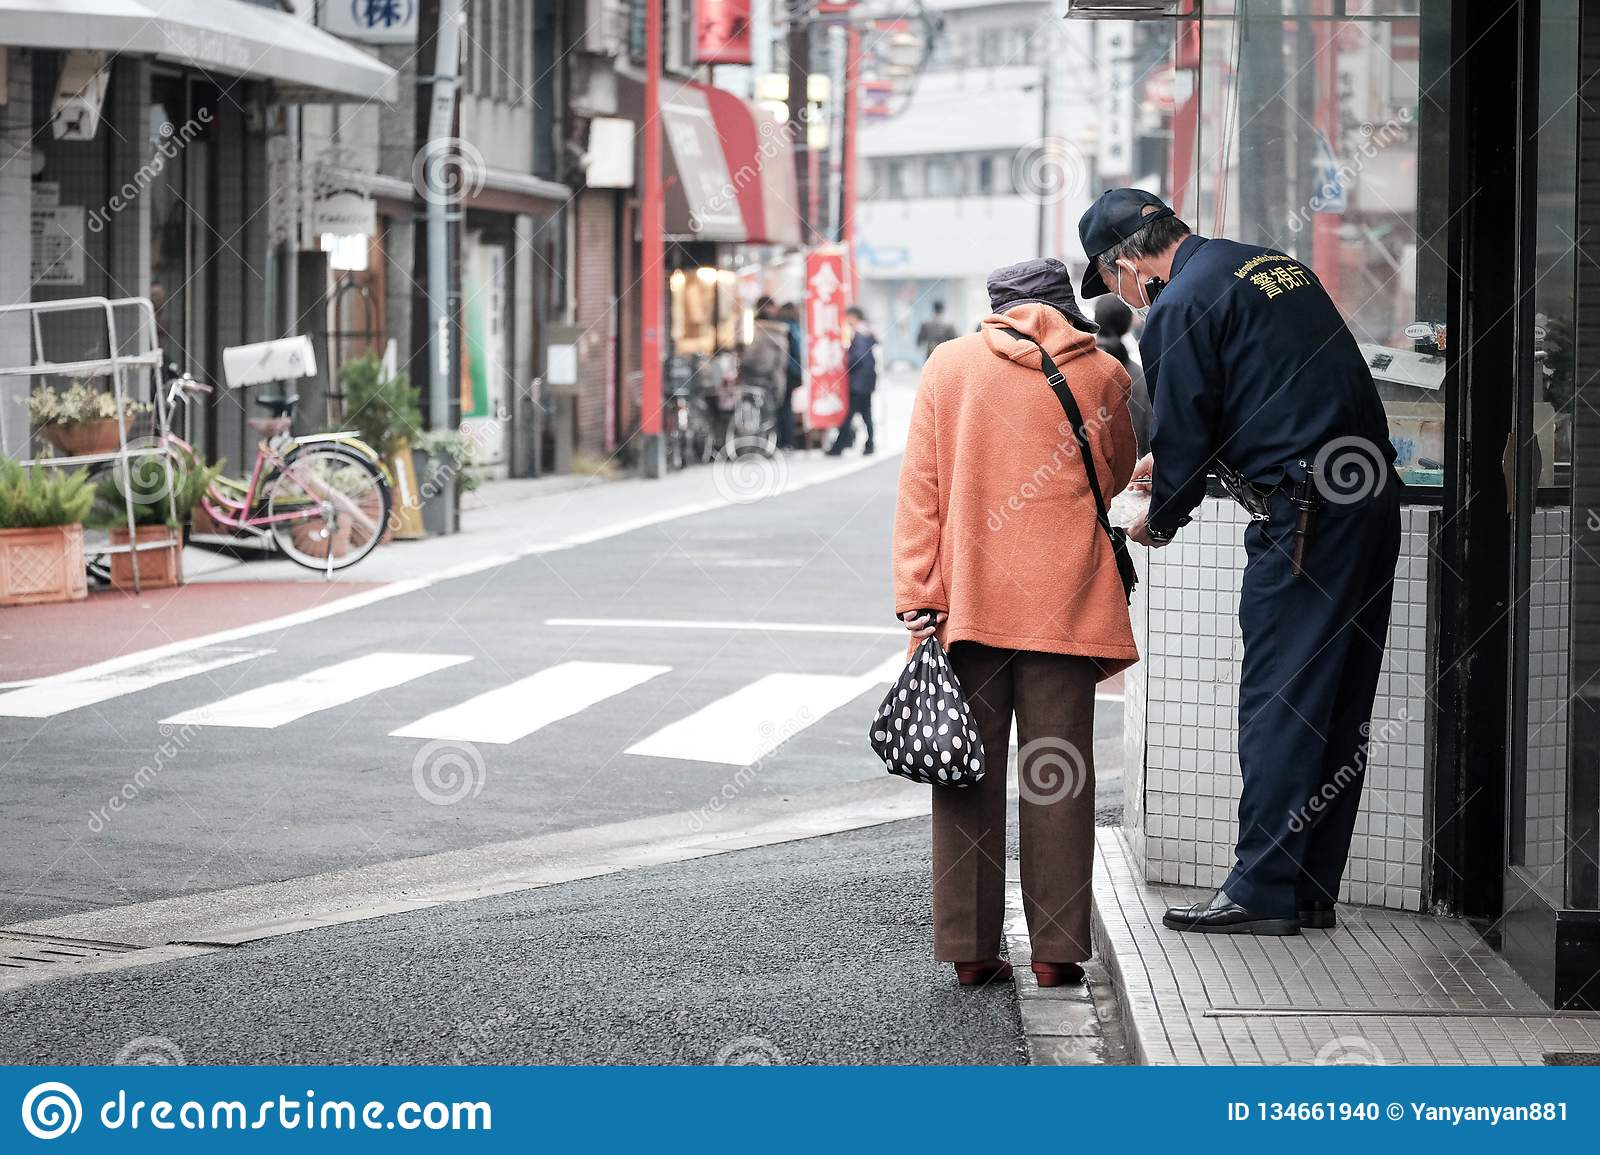 Old woman asks for direction from a police on the street of japan